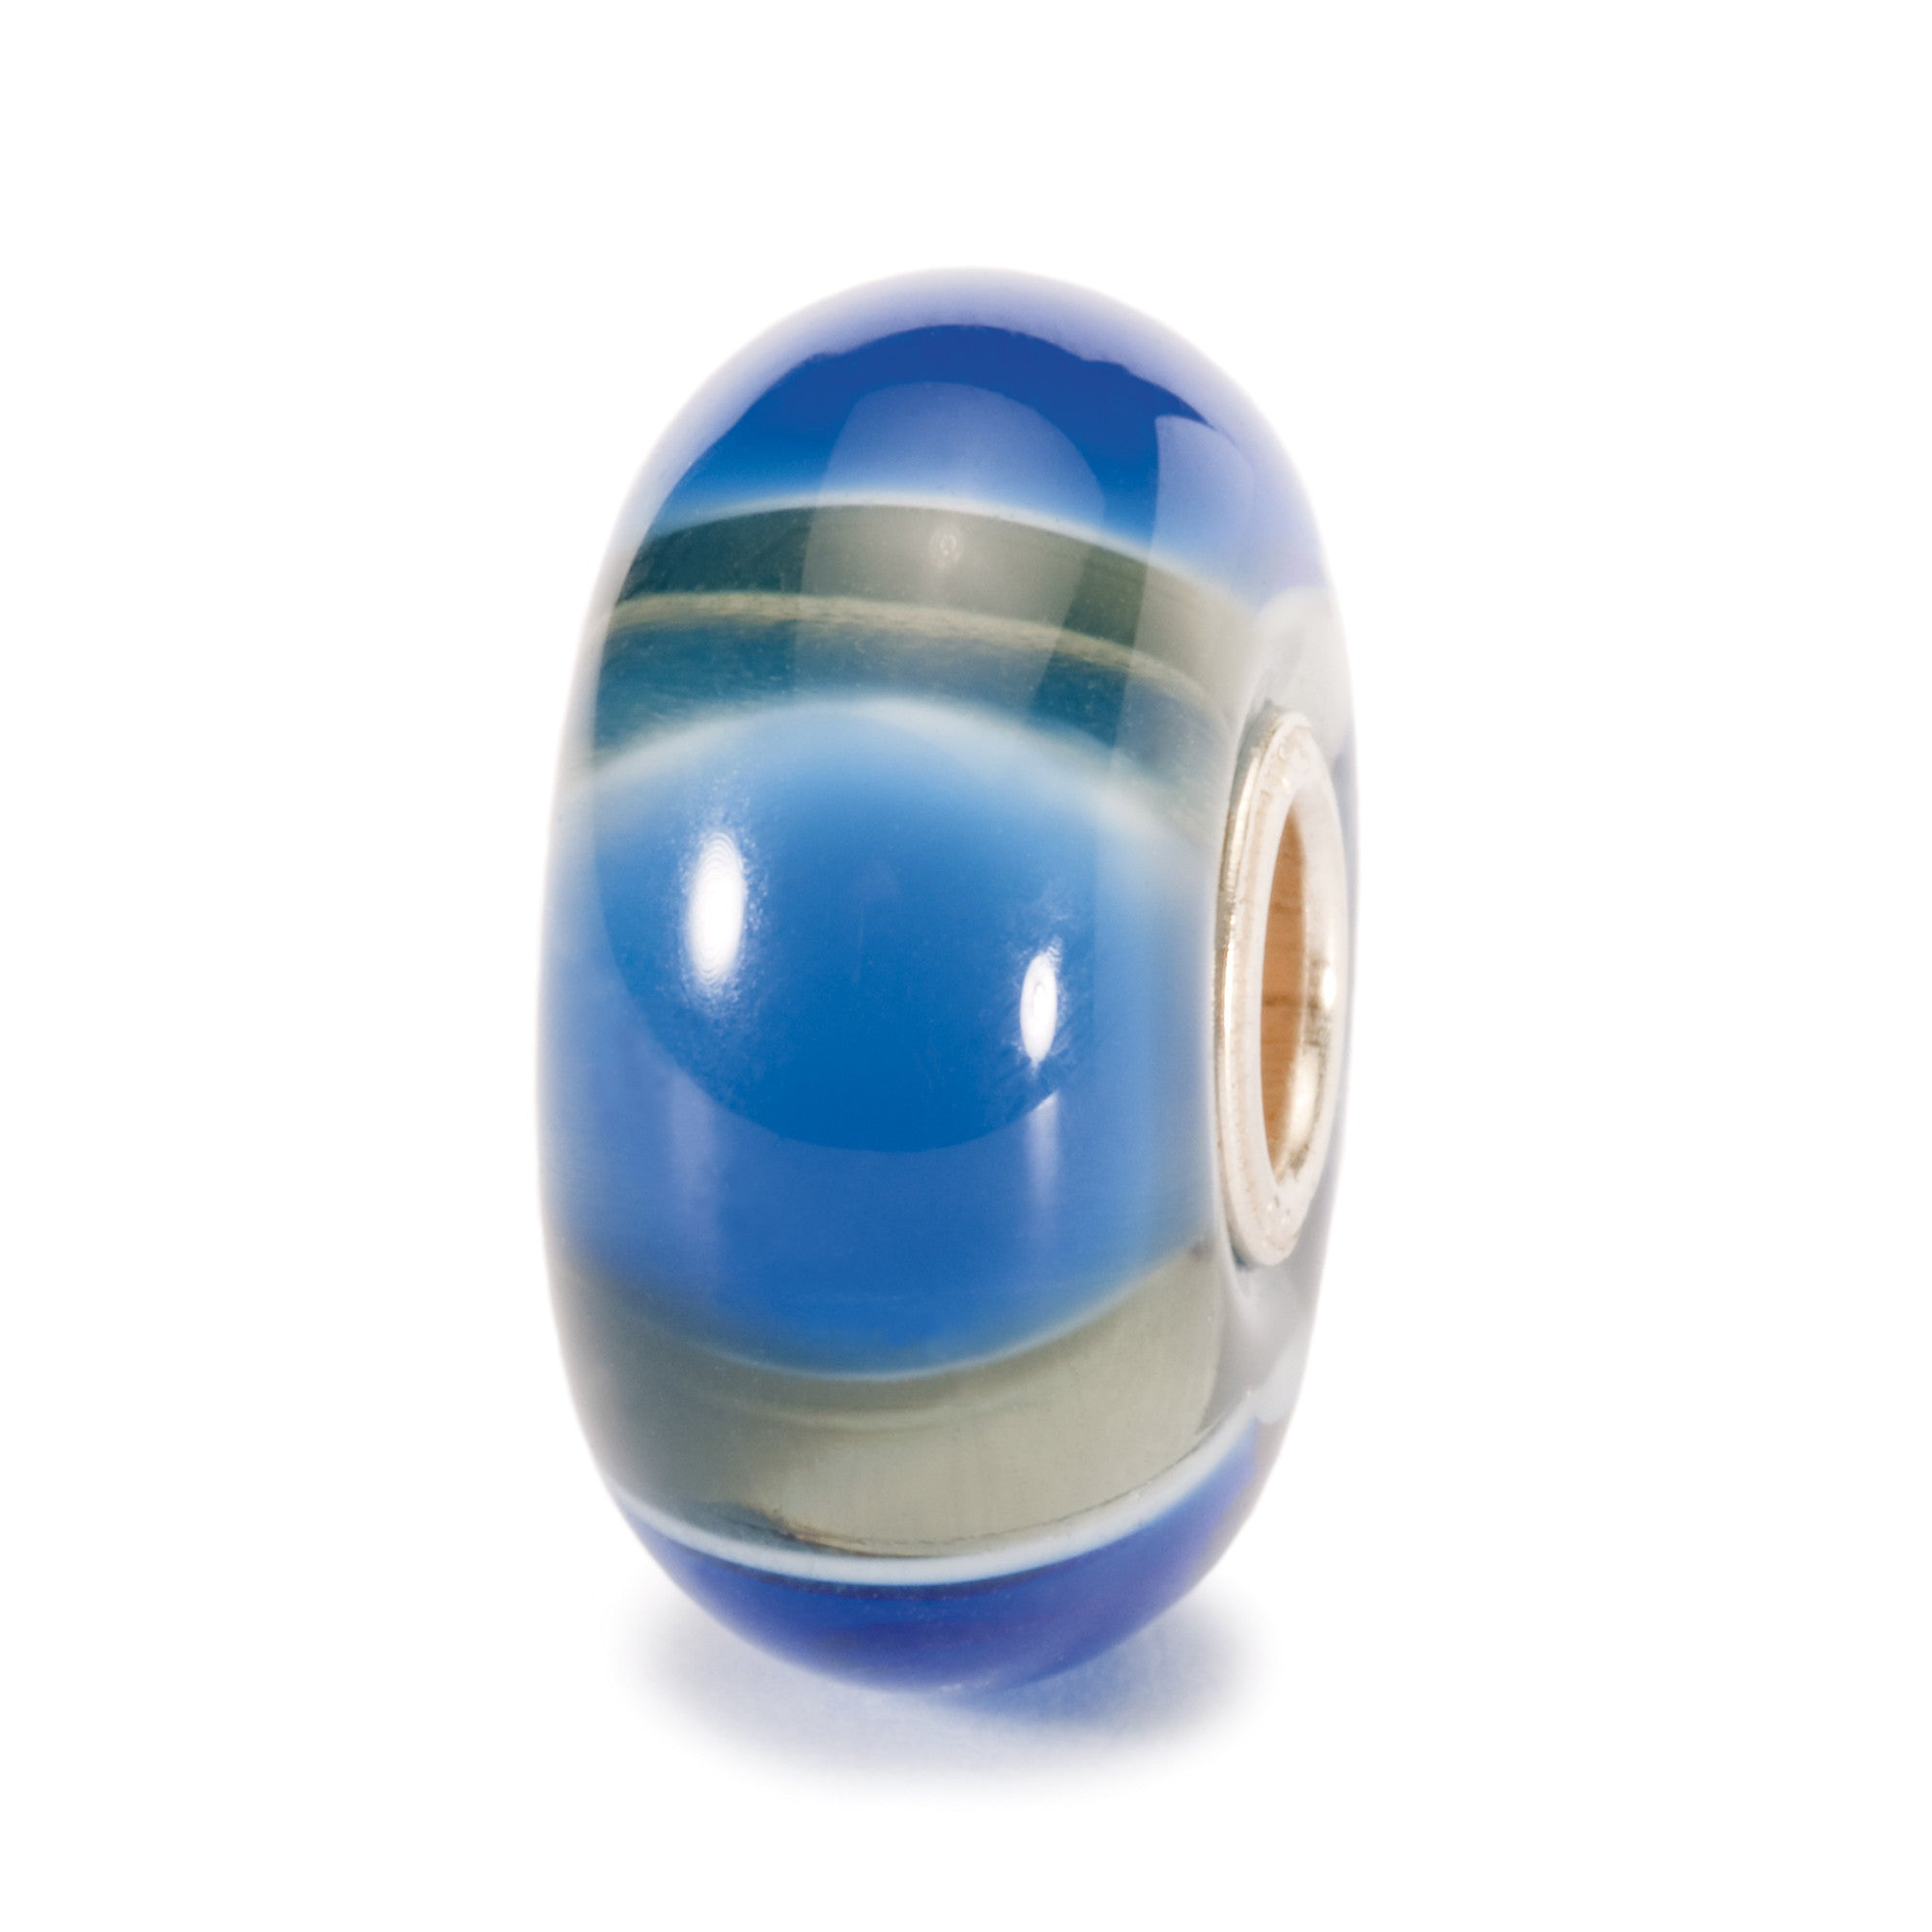 Trollbeads Bead Glass Blue Symmetry D